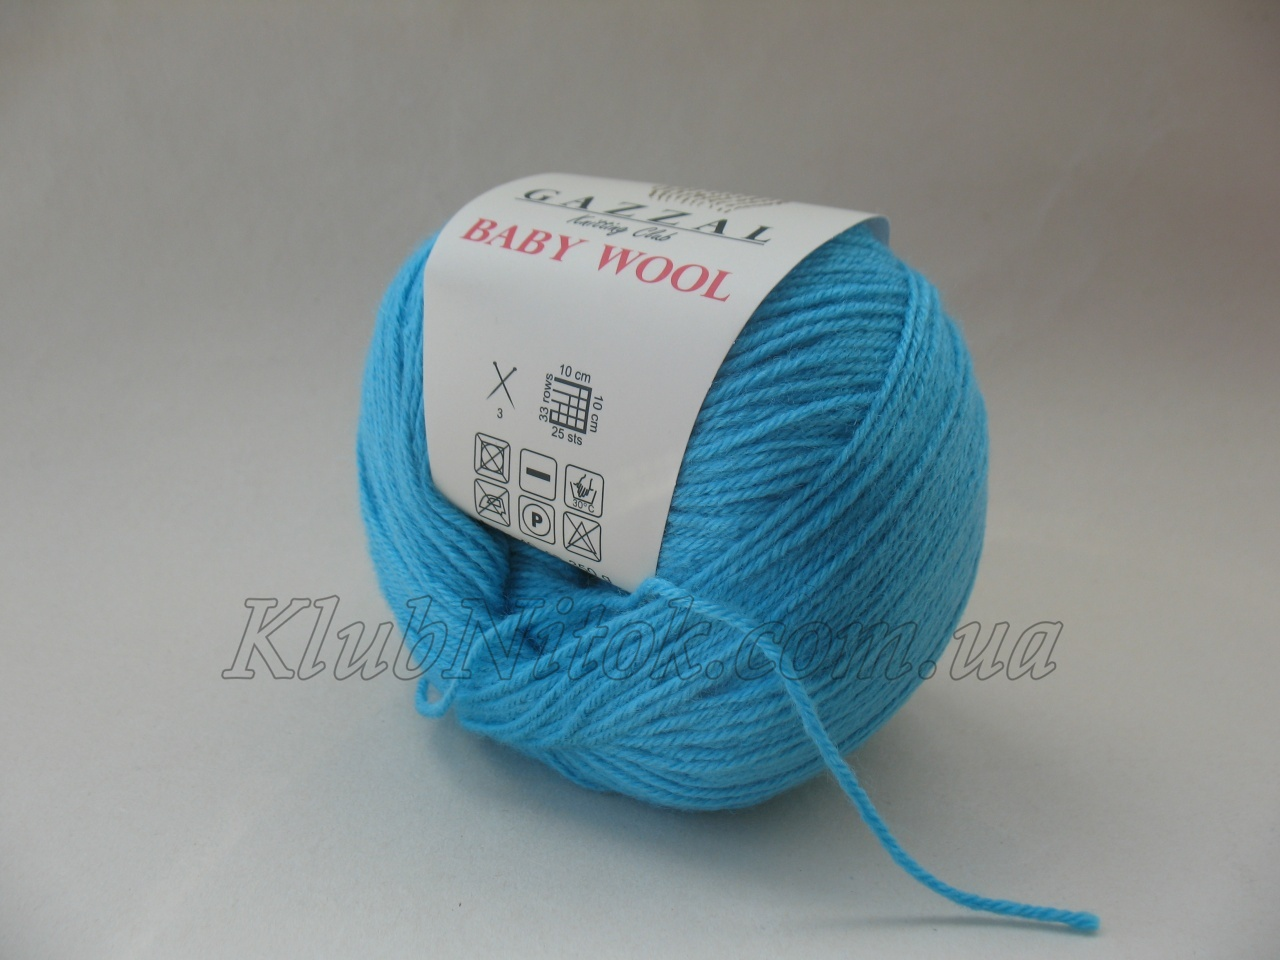 Baby wool 820